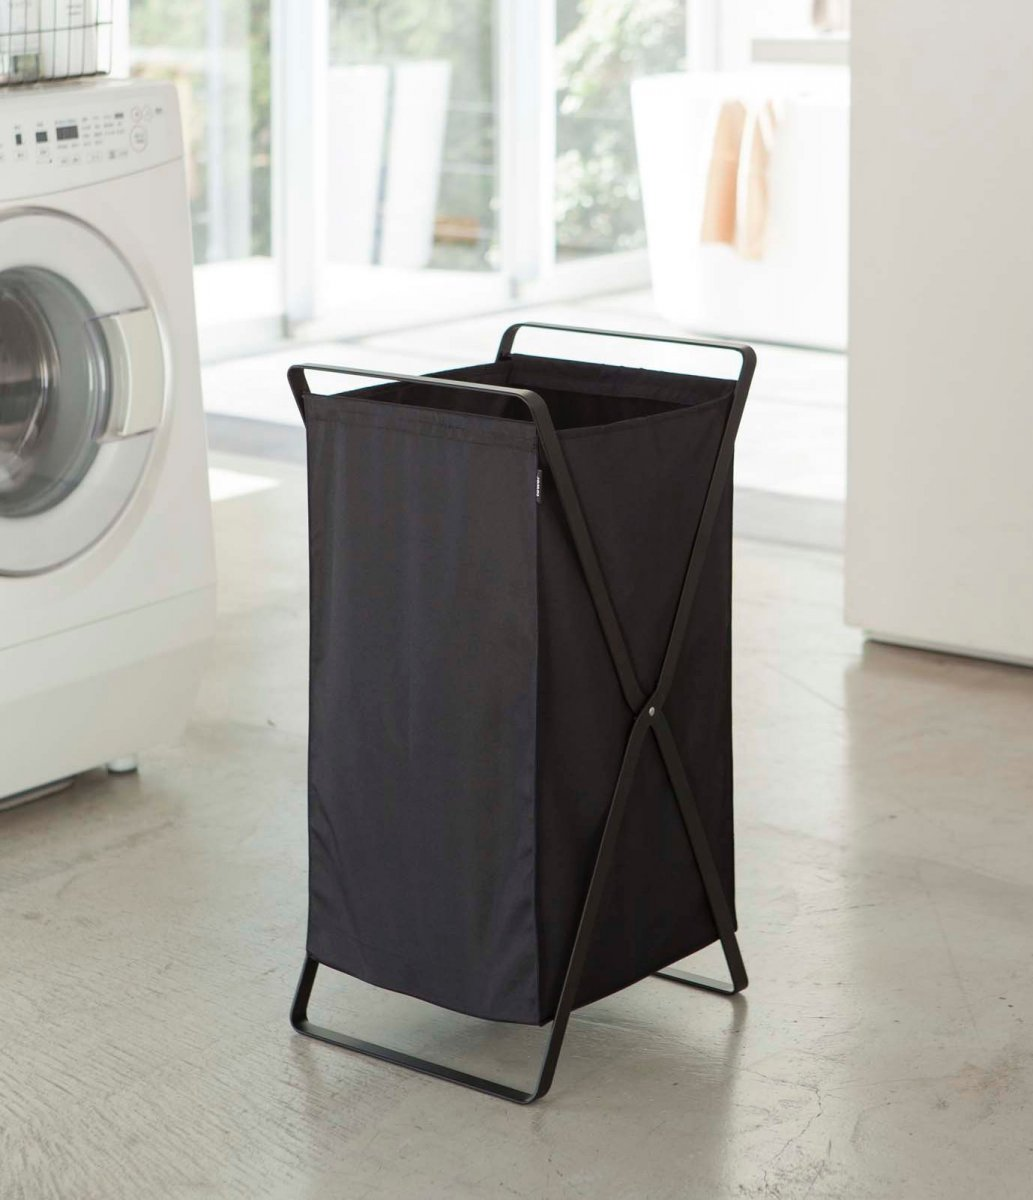 Tower Laundry Basket, S, black.